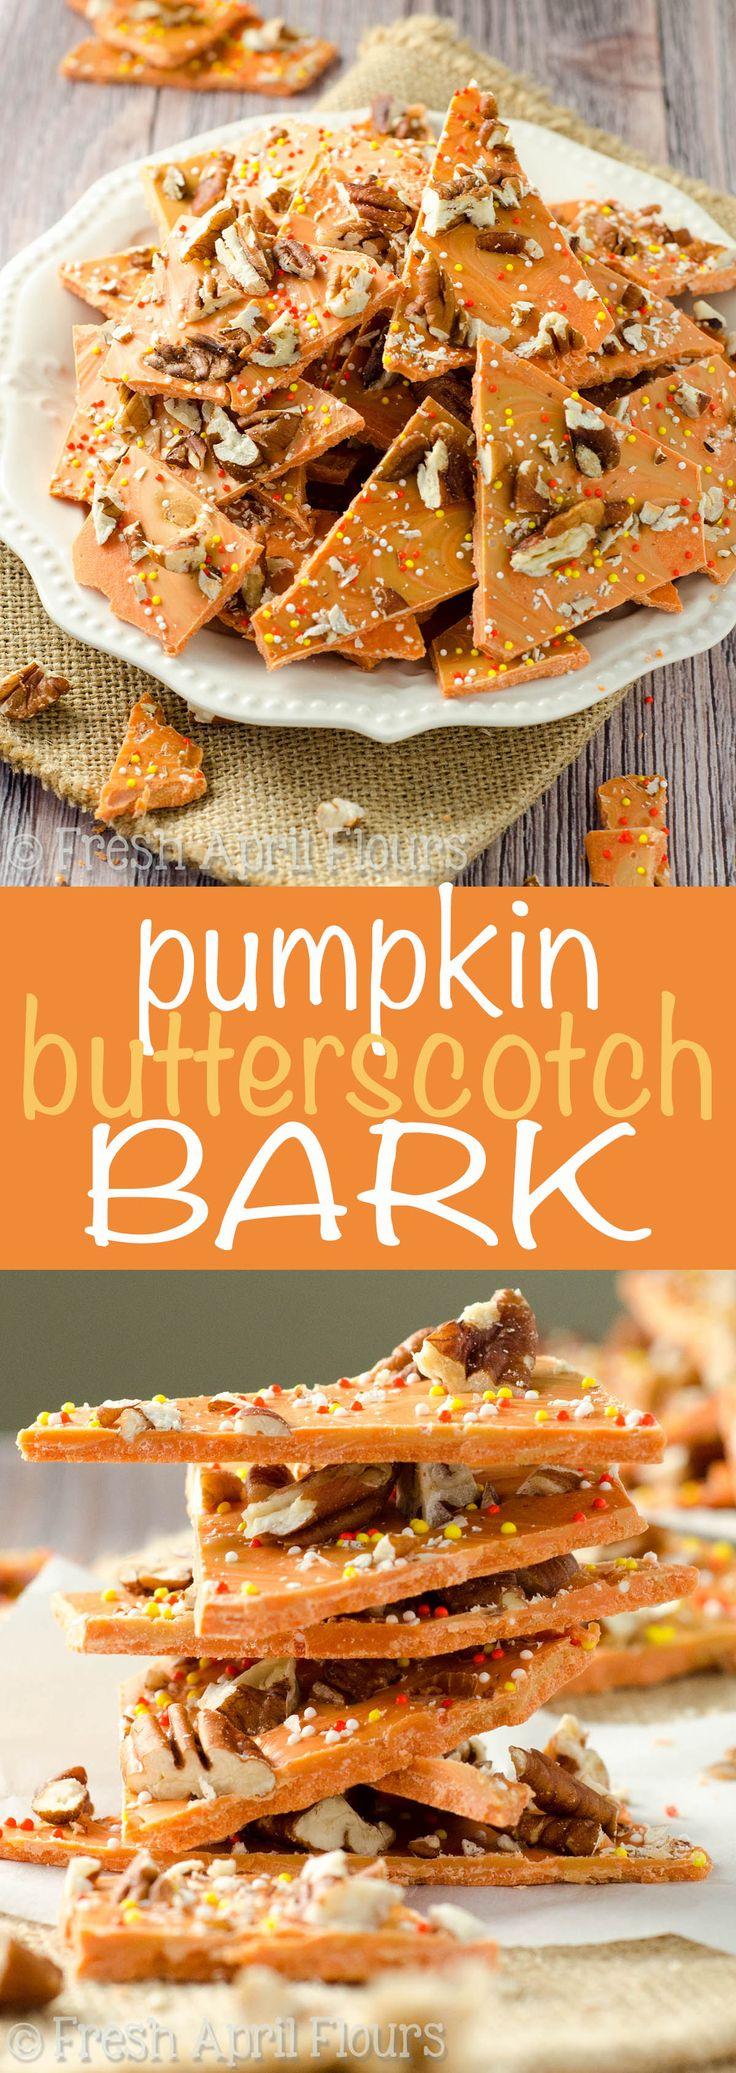 Pumpkin Butterscotch Bark